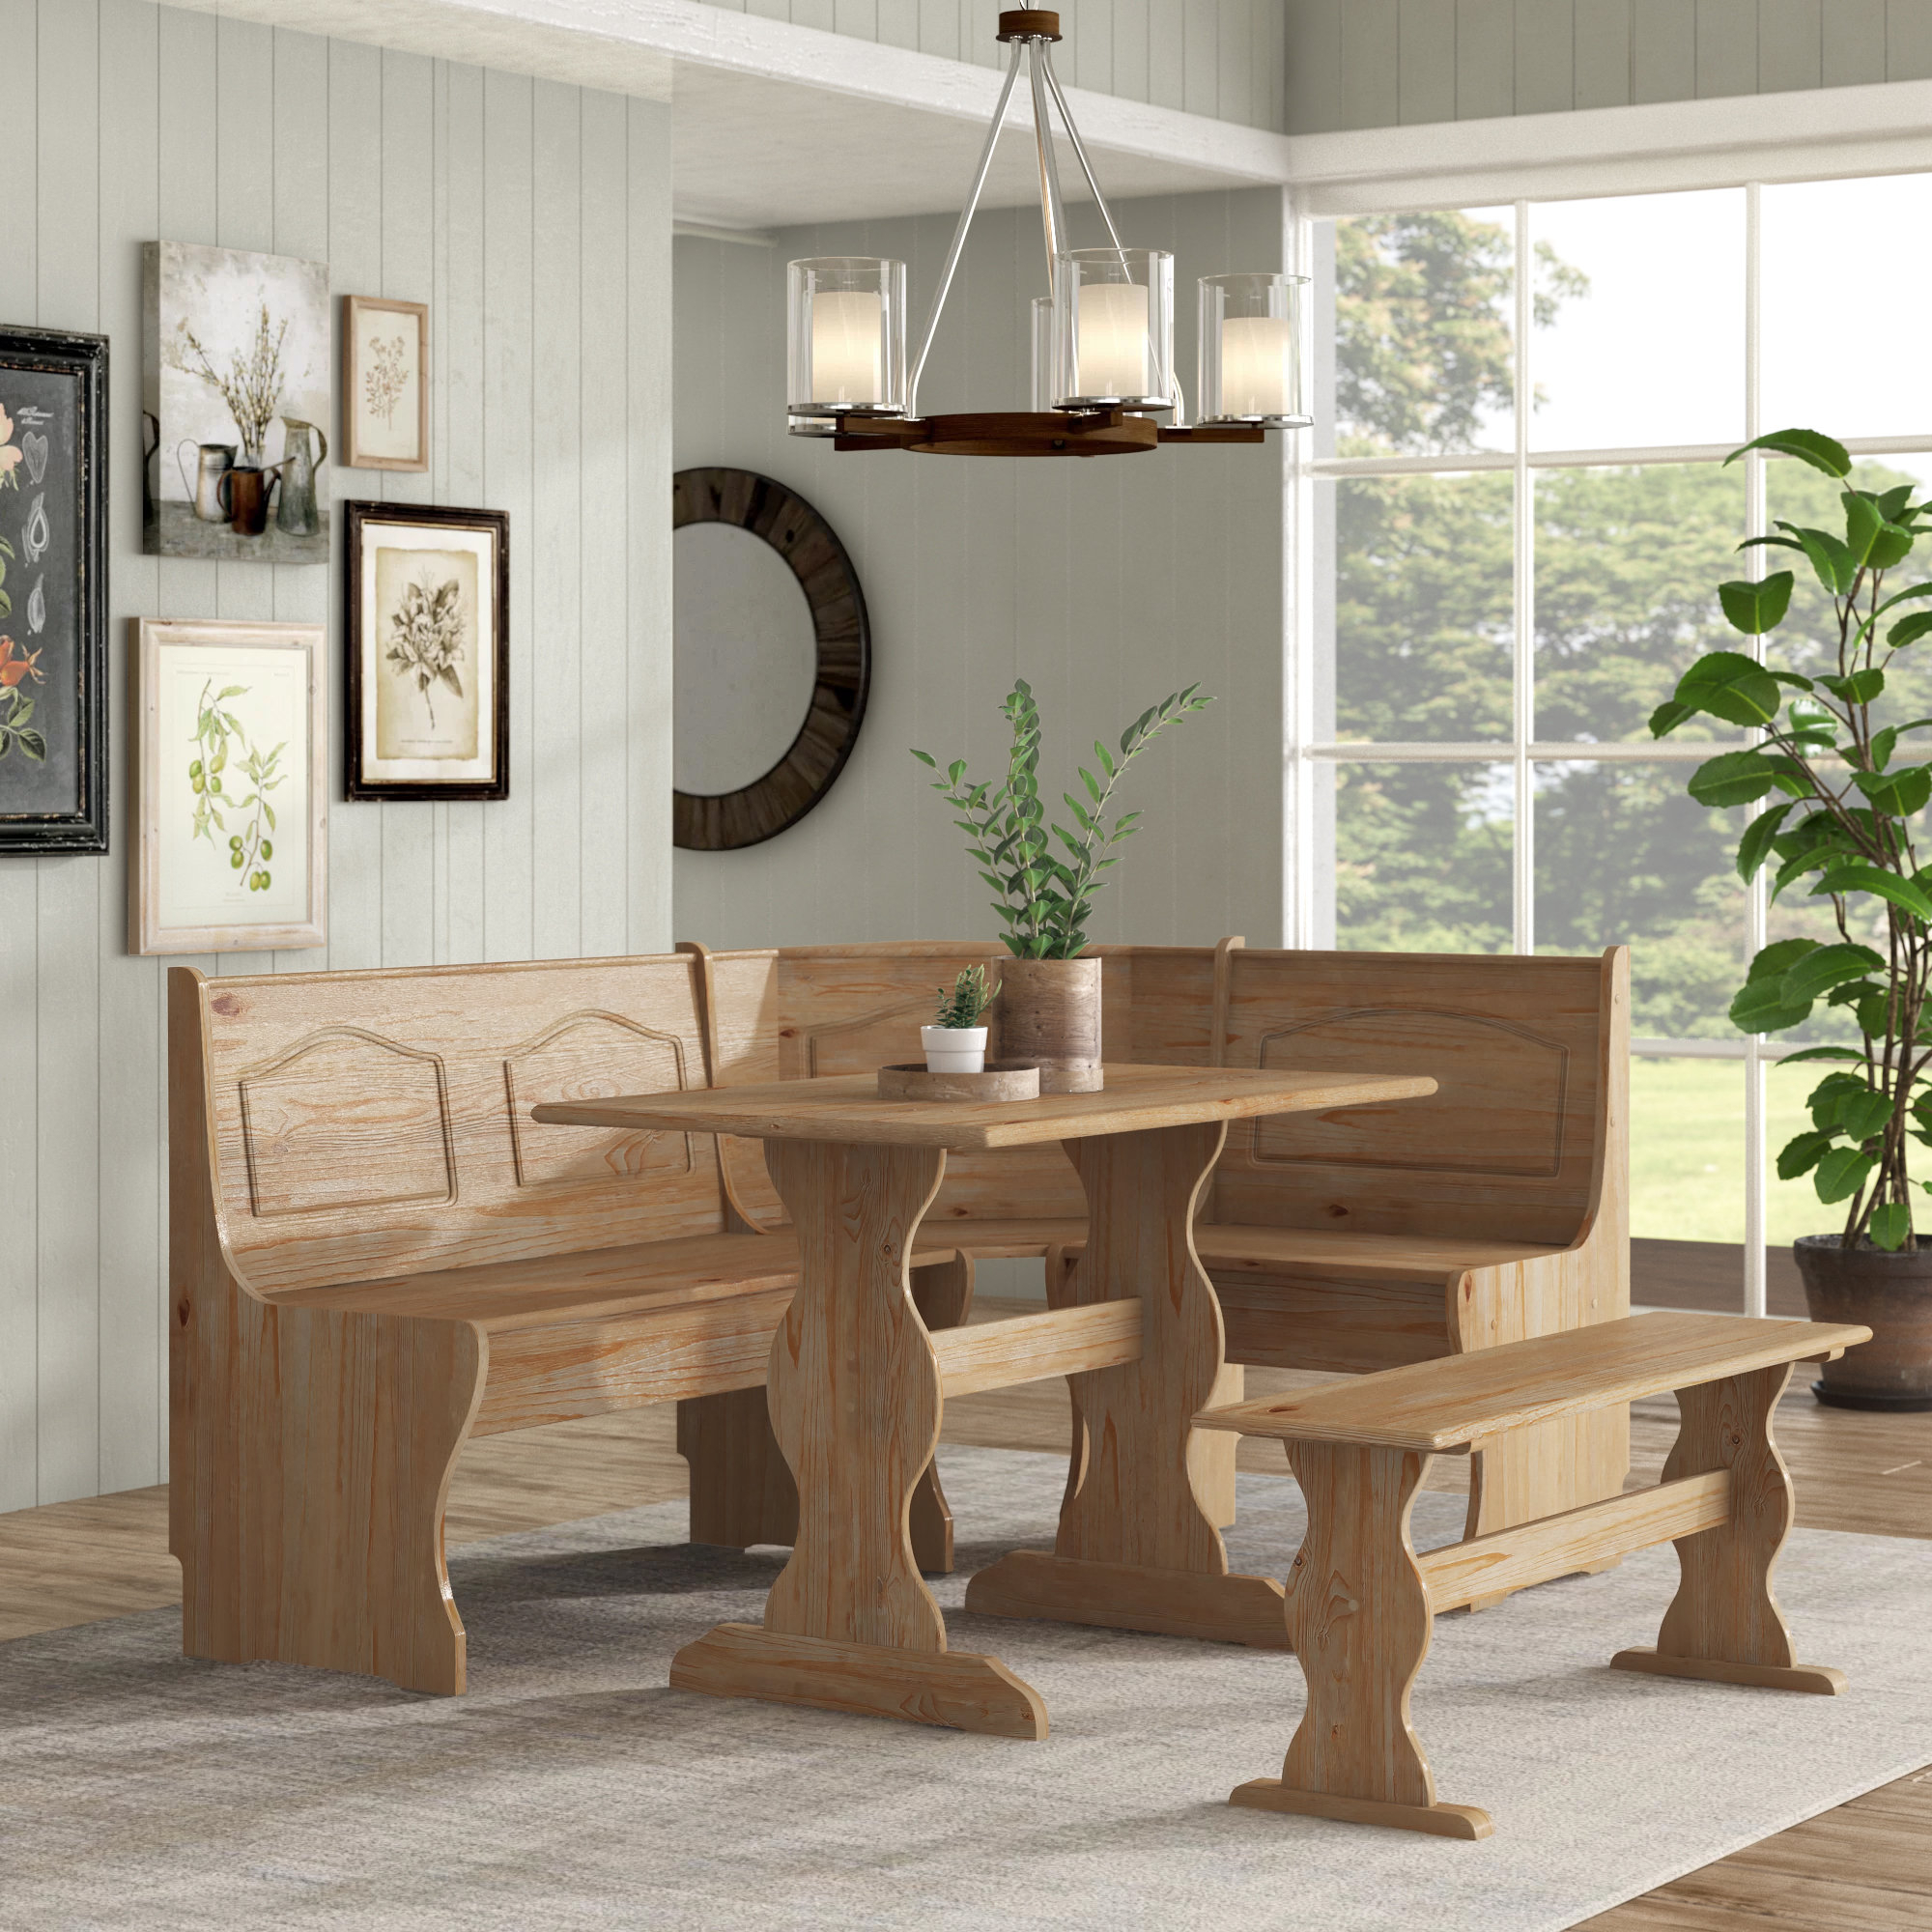 Padstow 3 Piece Breakfast Nook Dining Set Pertaining To Most Recently Released 3 Piece Breakfast Nook Dinning Set (Photo 7 of 20)